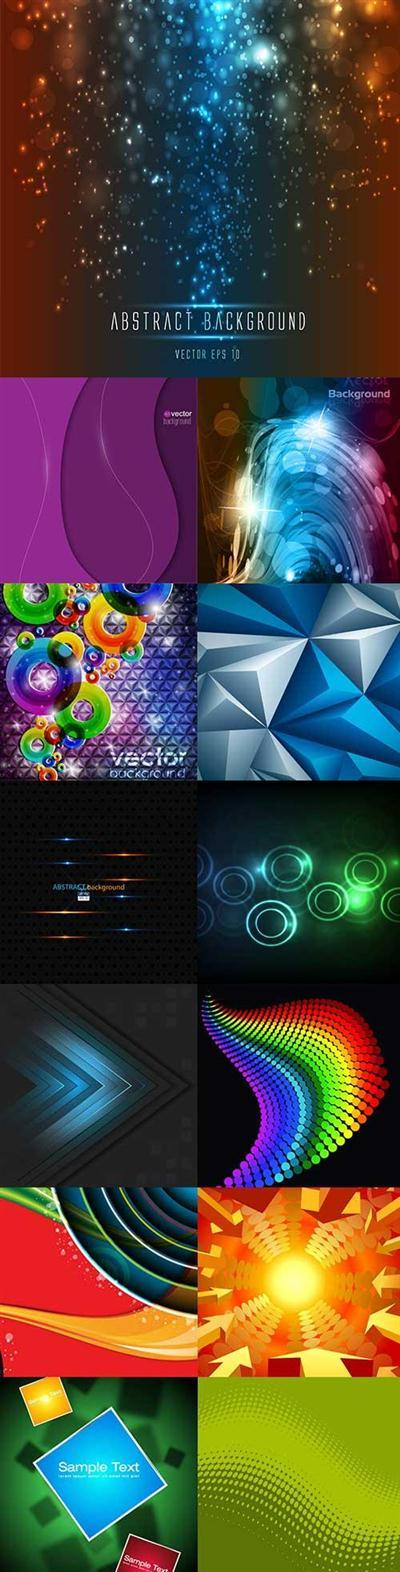 Bright colorful abstract backgrounds vector -50